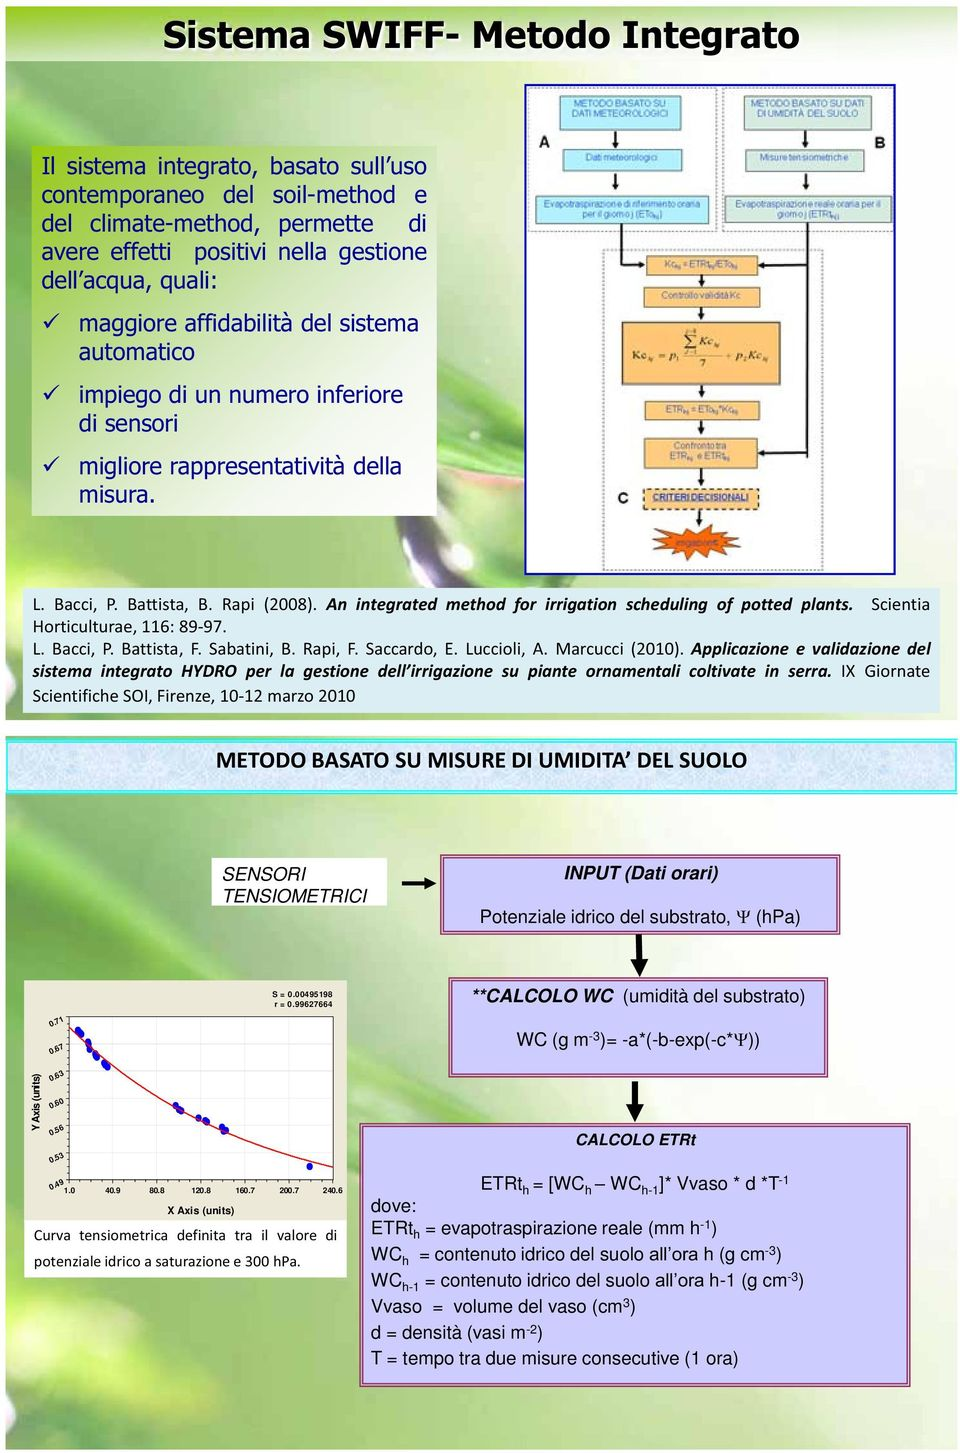 An integrated method for irrigation scheduling of potted plants. Scientia Horticulturae, 116: 89-97. L. Bacci, P. Battista, F. Sabatini, B. Rapi, F. Saccardo, E. Luccioli, A. Marcucci (2010).